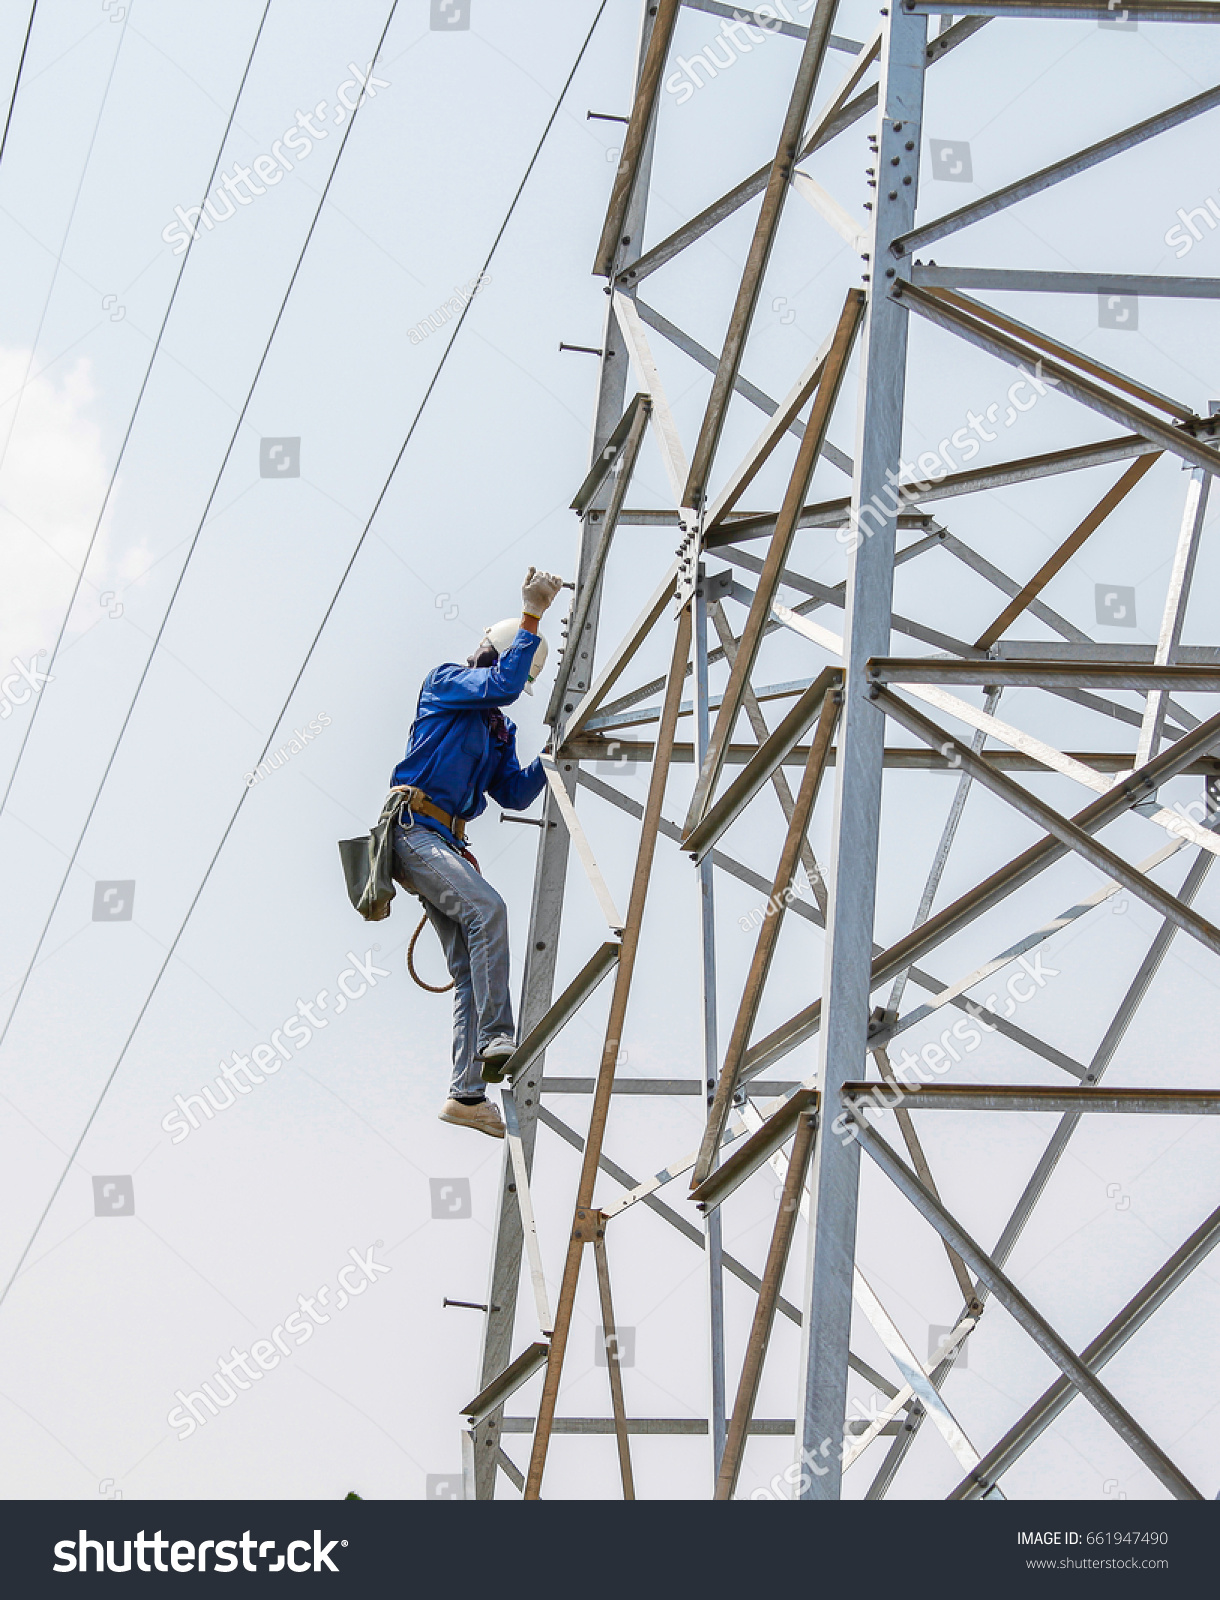 Lineman Climbing On Transmission Line Tower Stock Photo Edit Now 661947490